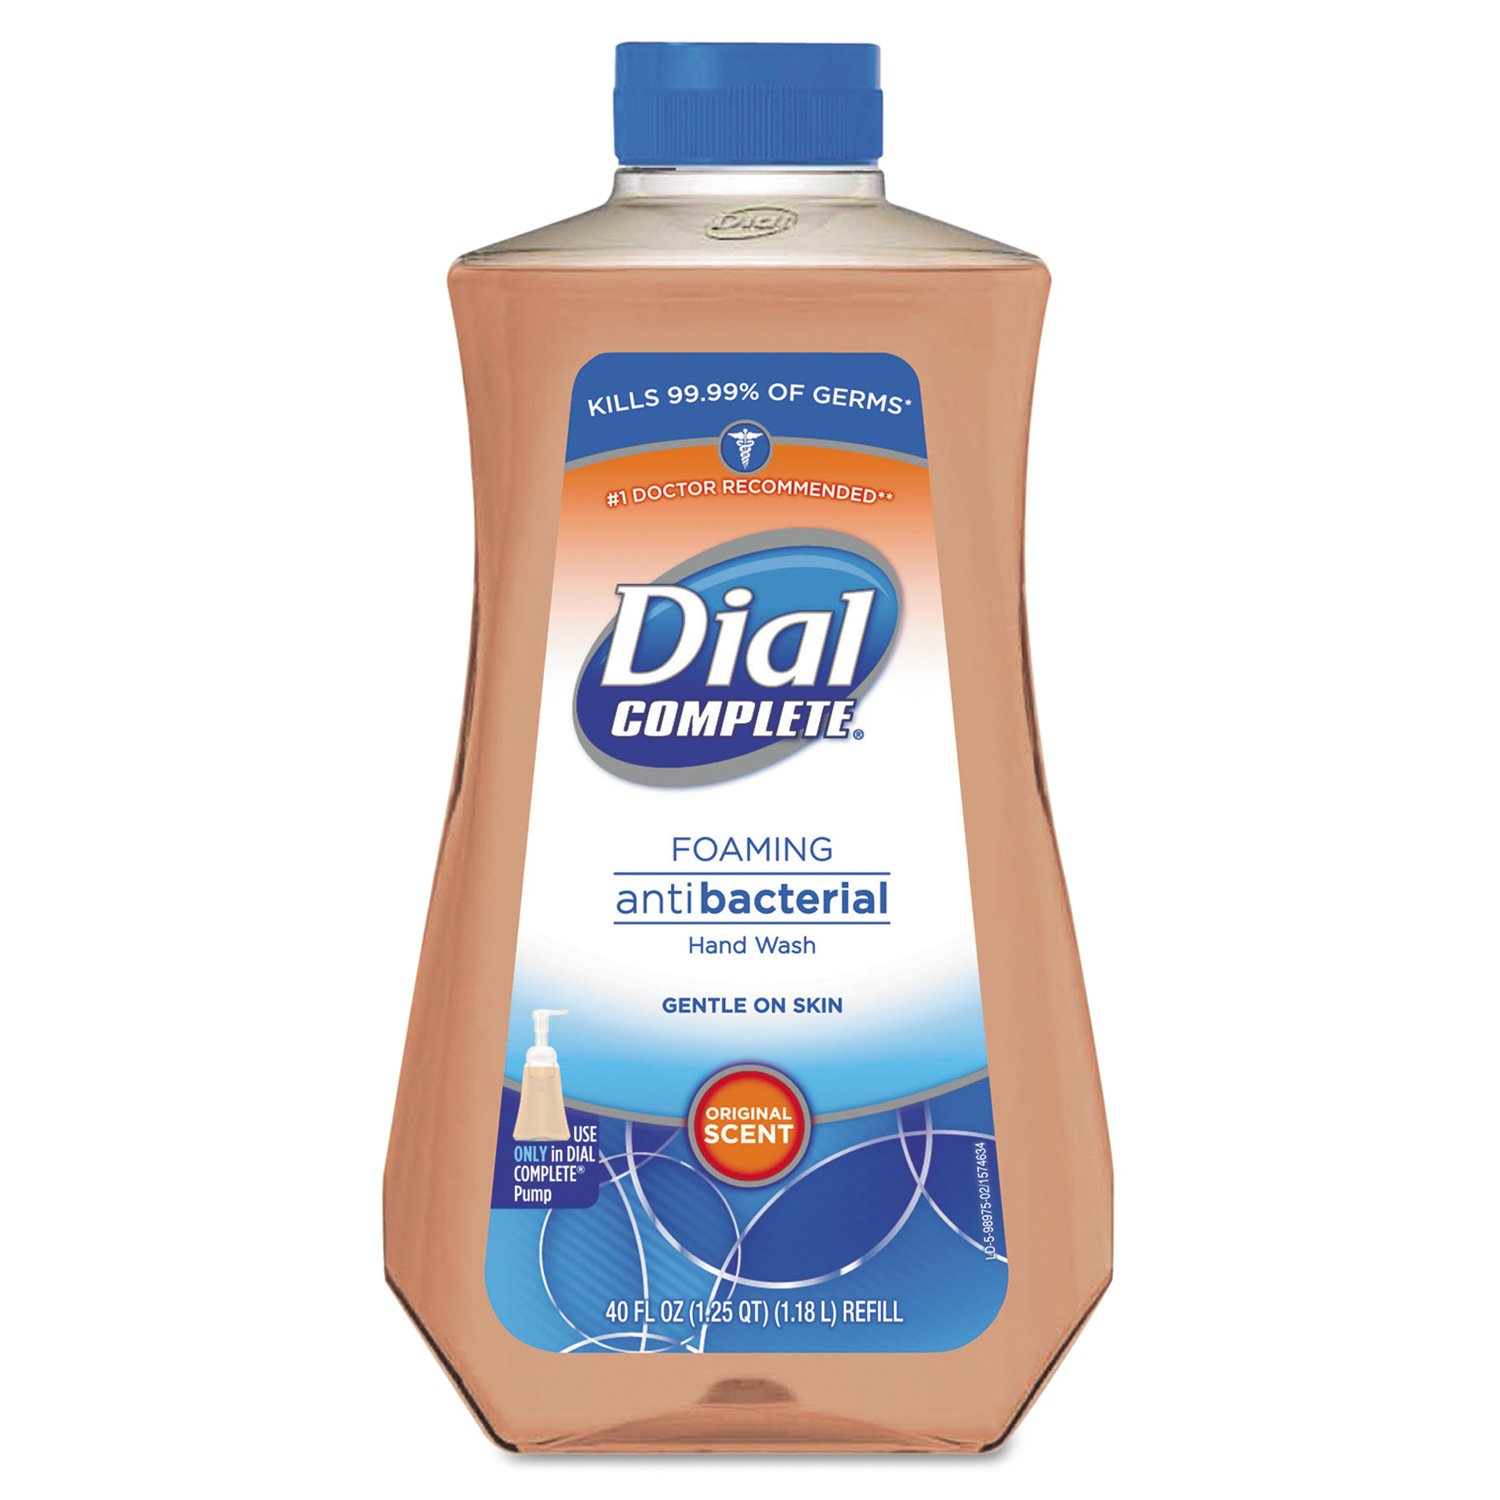 Dial Professional DIA 98976 Antimicrobial Foaming Hand Soap, Original Scent, 40 oz, Light Pink (Pack of 6)